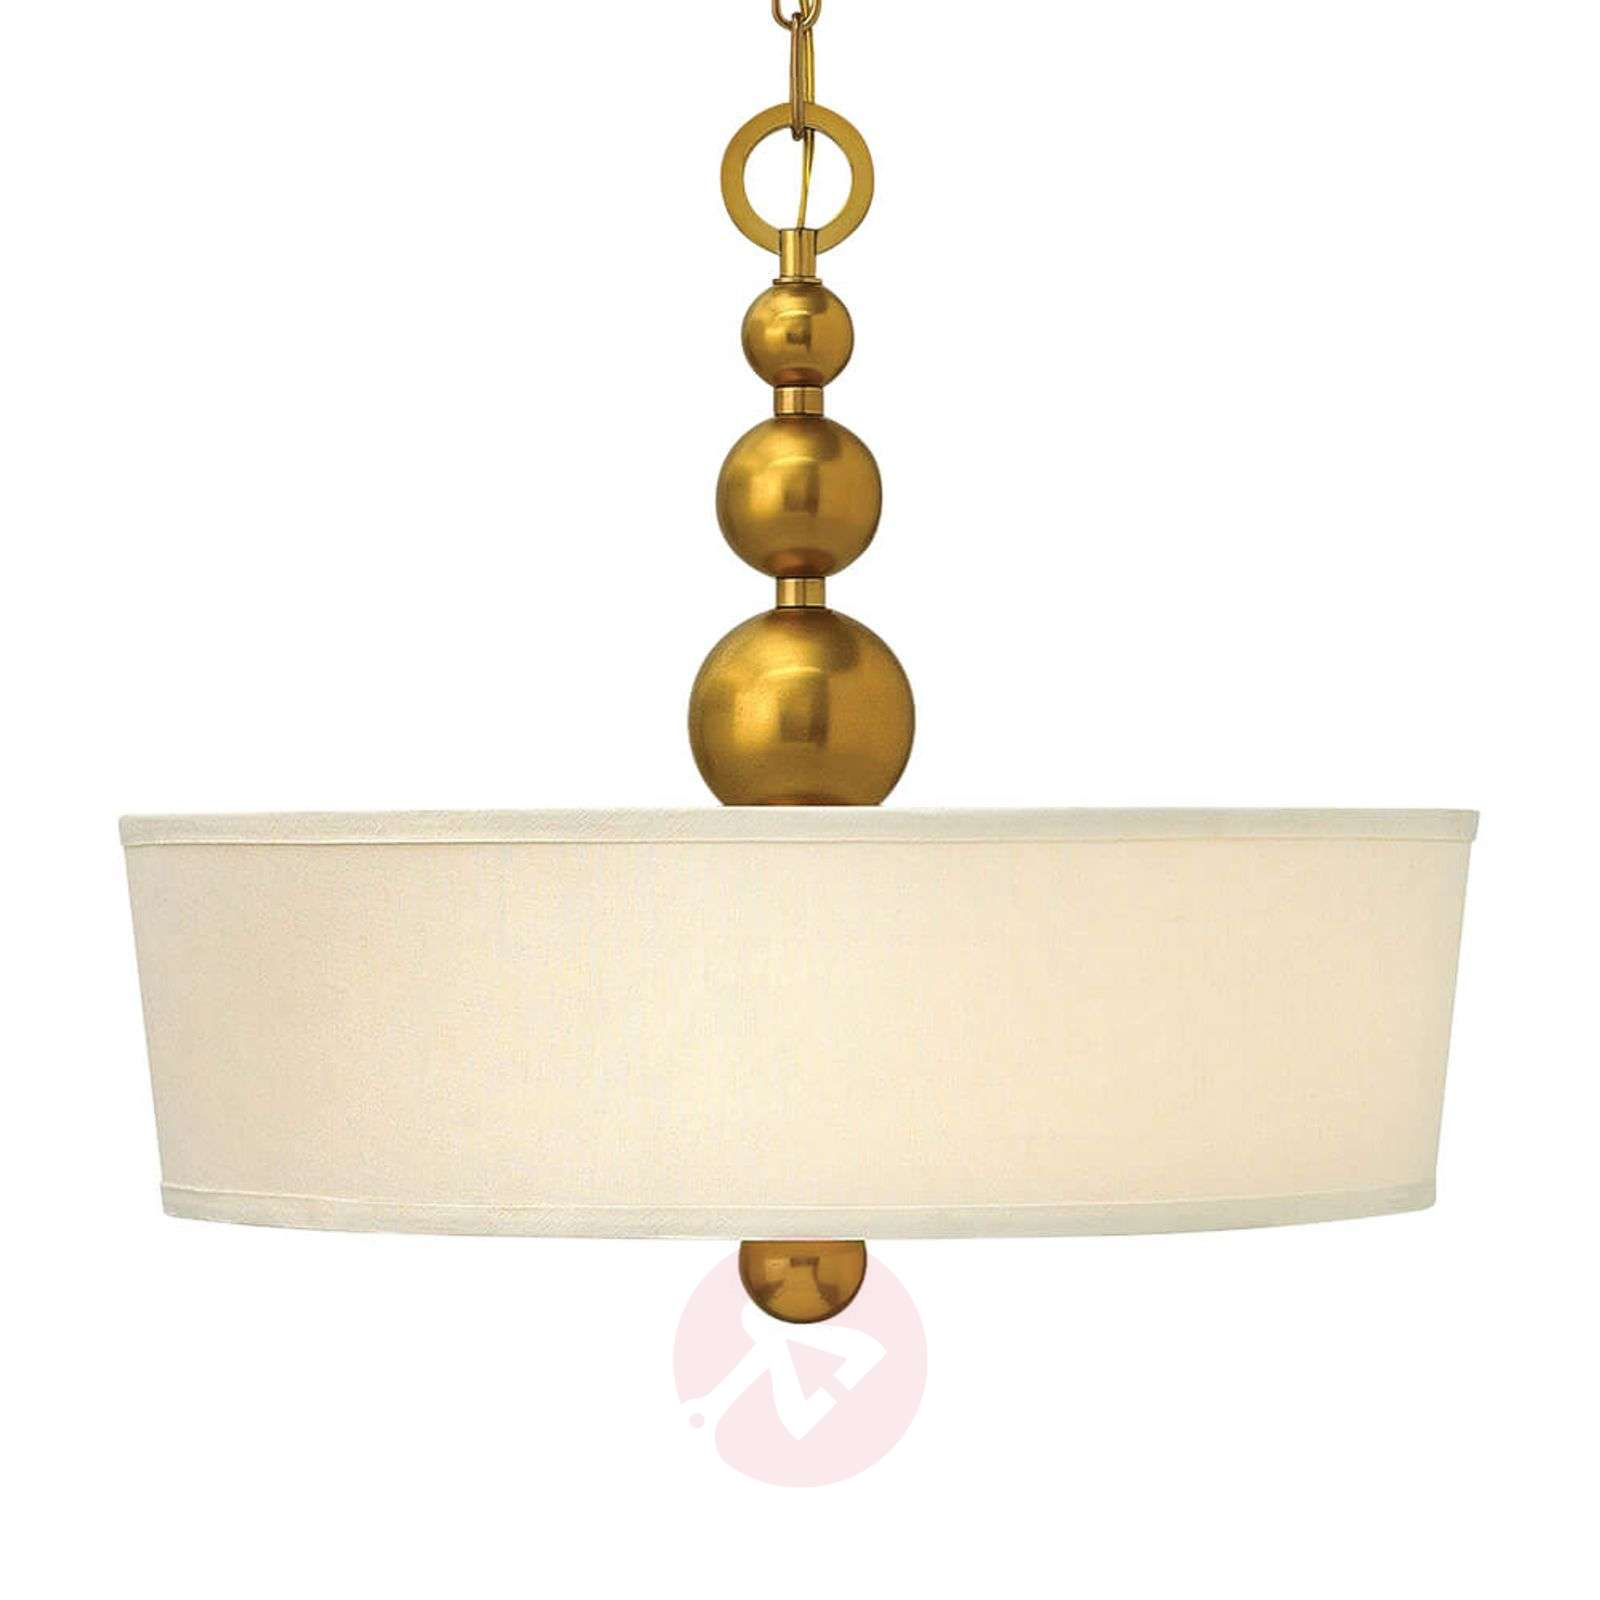 Enchanting pendant light Zelda-3048481-01